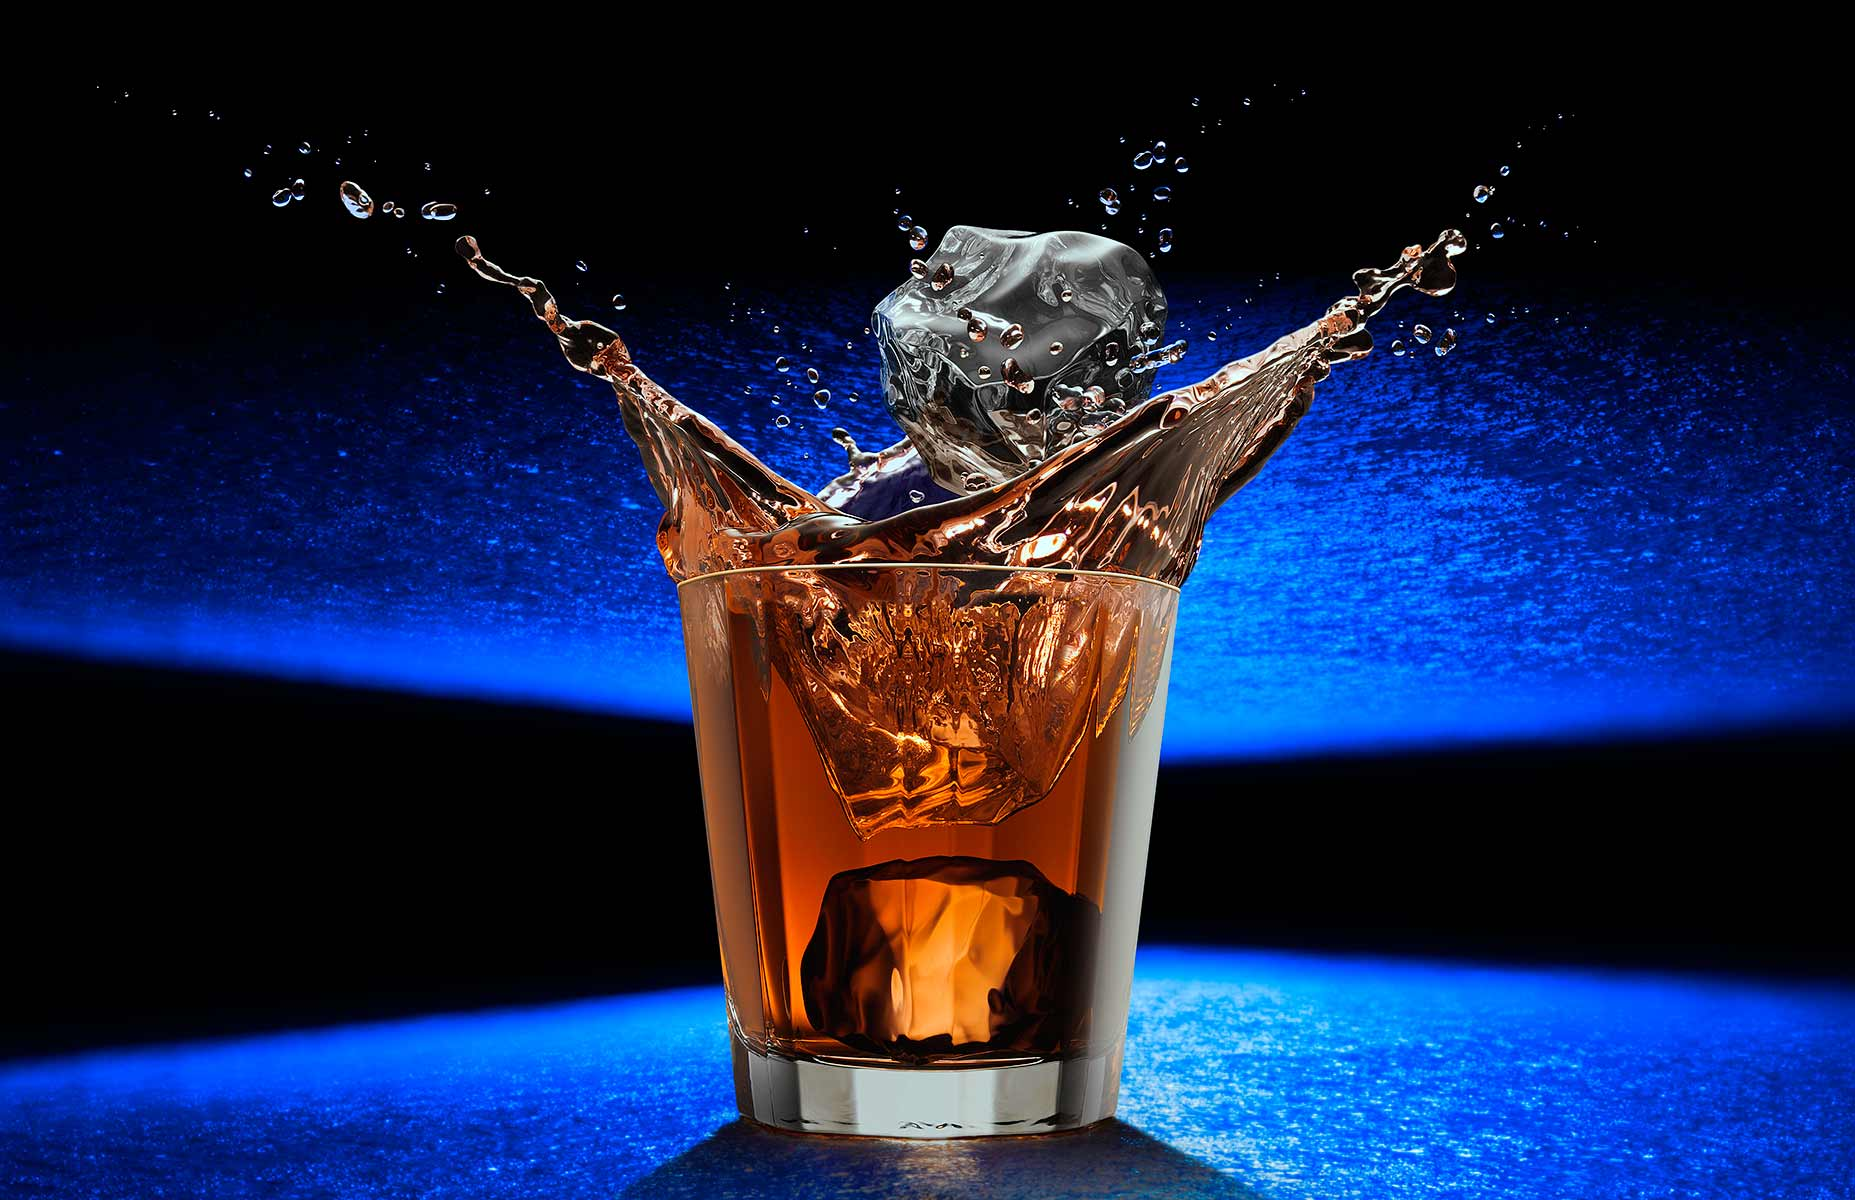 Dropping ice cubes suddenly hit the whiskey in a 12 sided polygon cocktail glass and creates a crown of splashing fluid. Photographed on a futurisic pebbly blue reflective surface in a landscape orientation. An example of high speed photography perfectly capturing and {quote}freezing the motion{quote} of the splashing fluid and descending ice cubes.